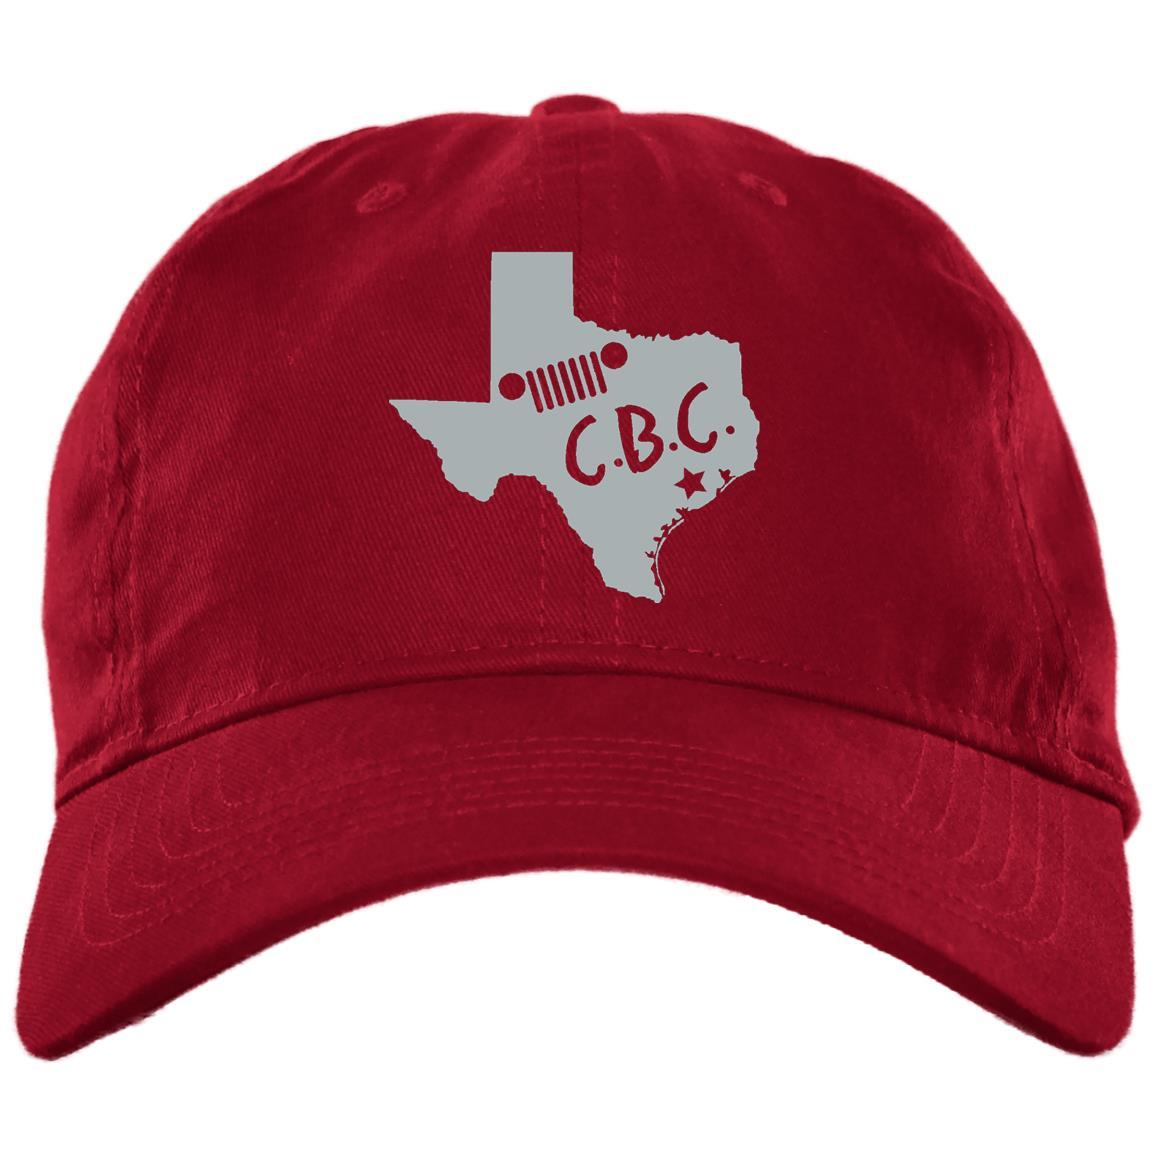 06de8ee64d2 ... C.B.C. embroidered silver logo BX001 Brushed Twill Unstructured Dad Cap  ...